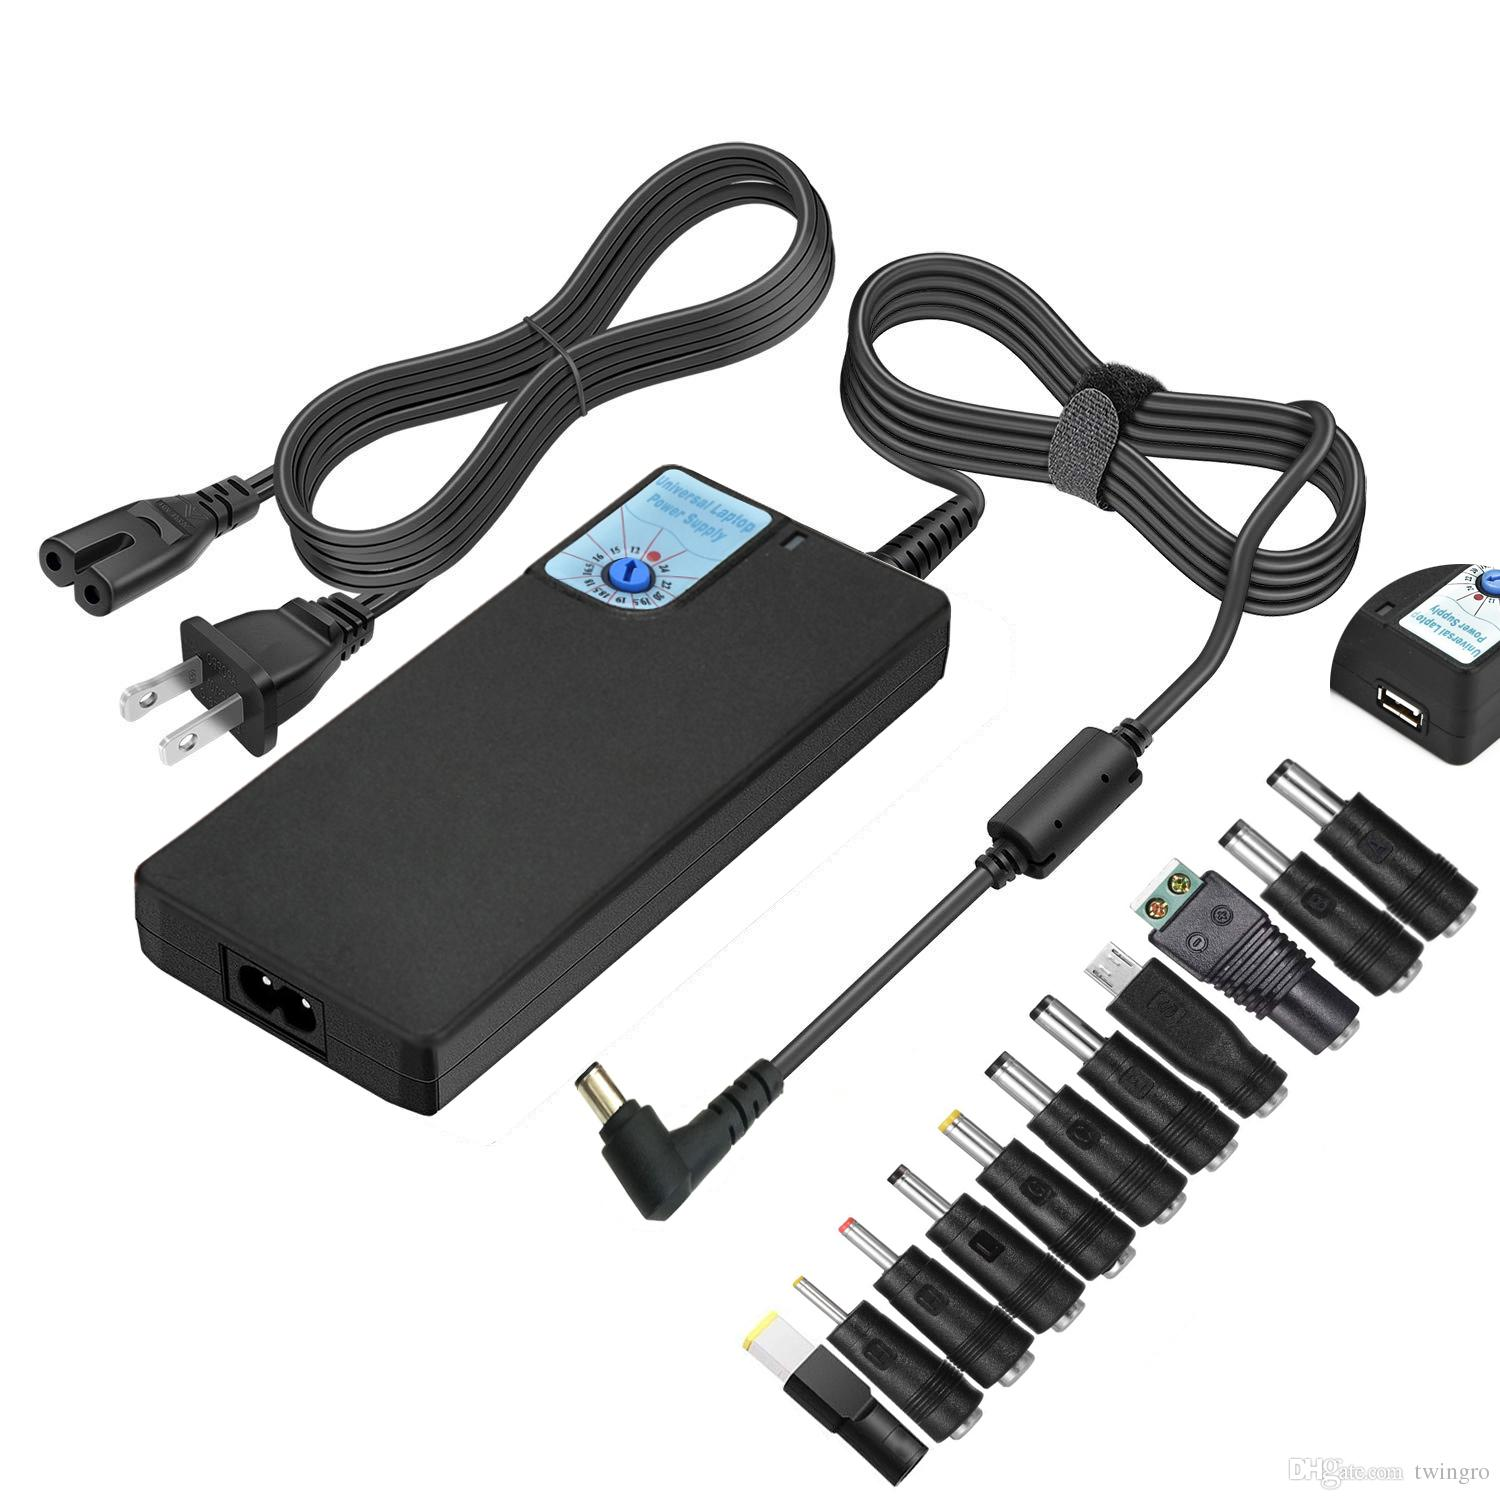 Universal Ac Laptop Charger Power Adapter for Hp Dell IBM Lenovo Apple Acer Samsung with USB Port